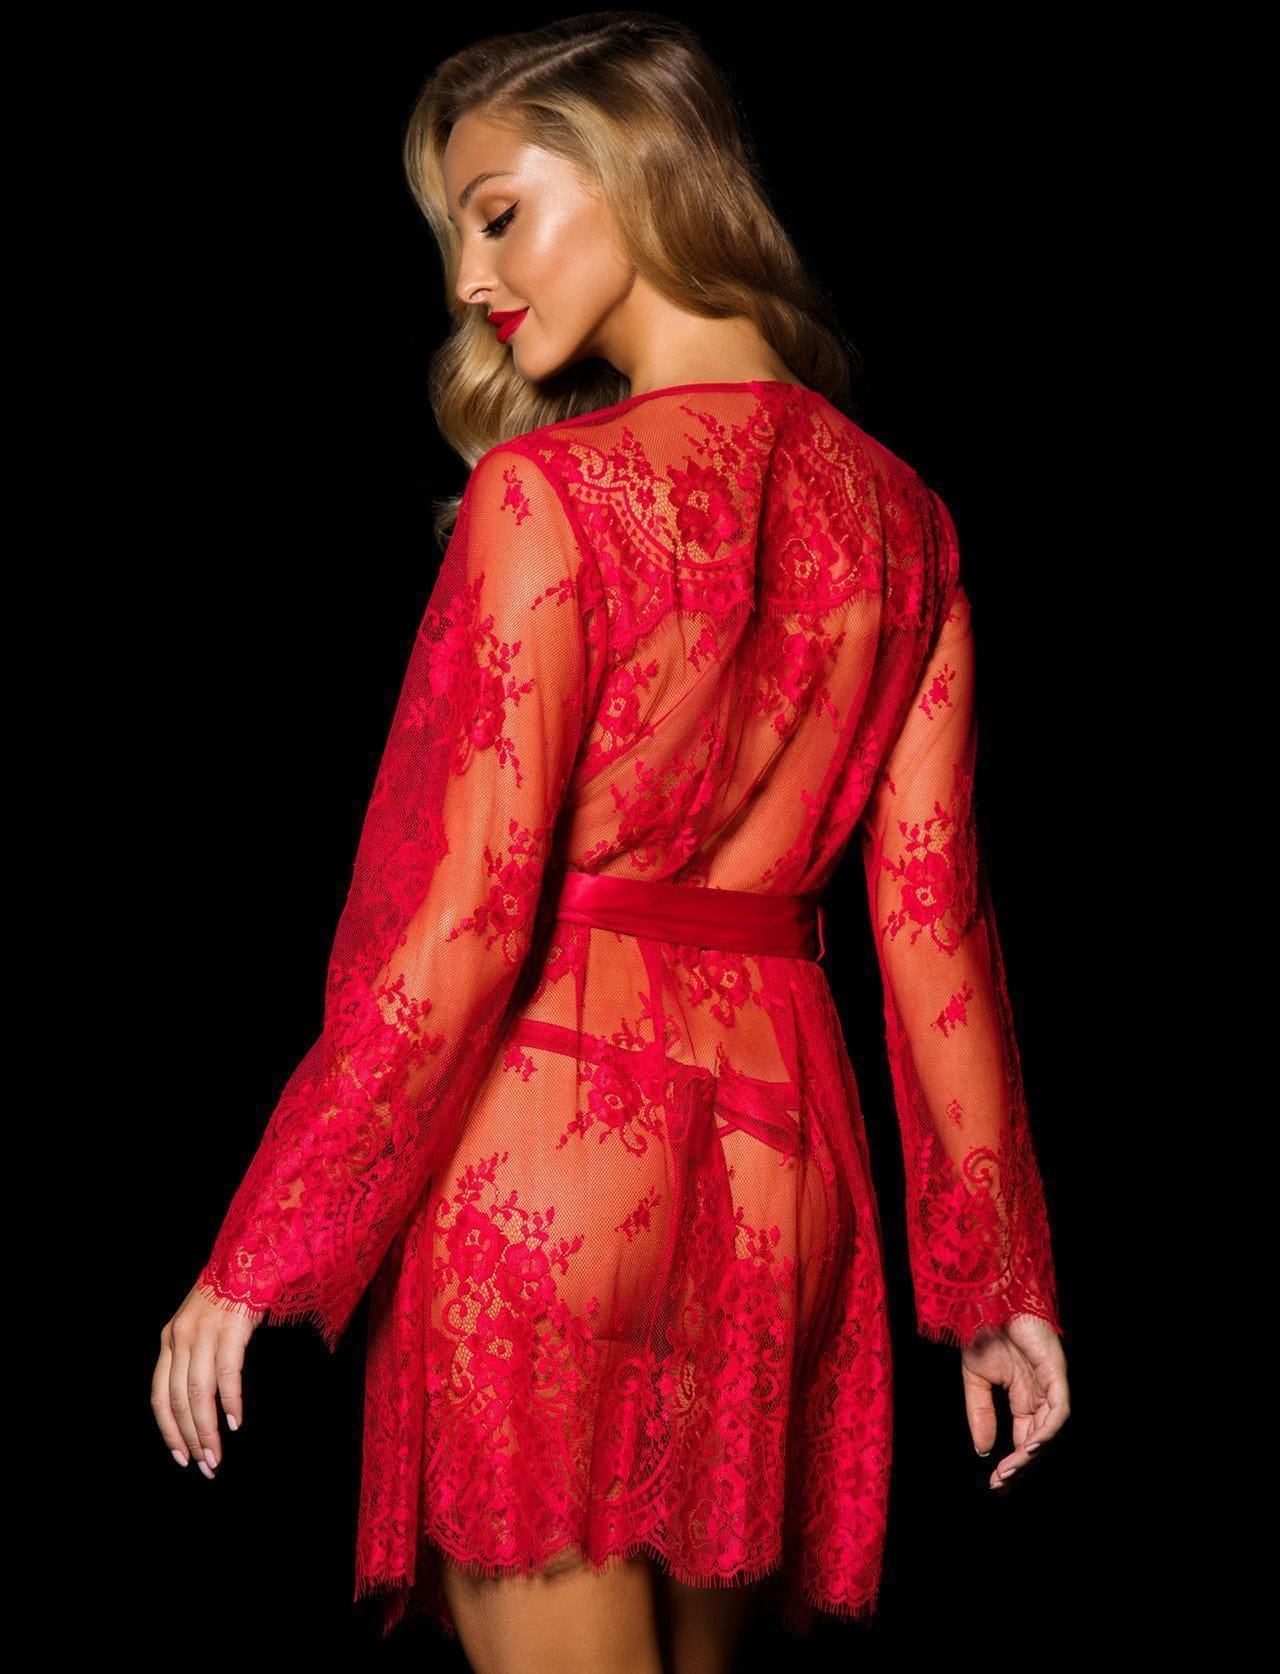 Red Love Lace Robe - Shop Robe | Honey Birdette UK